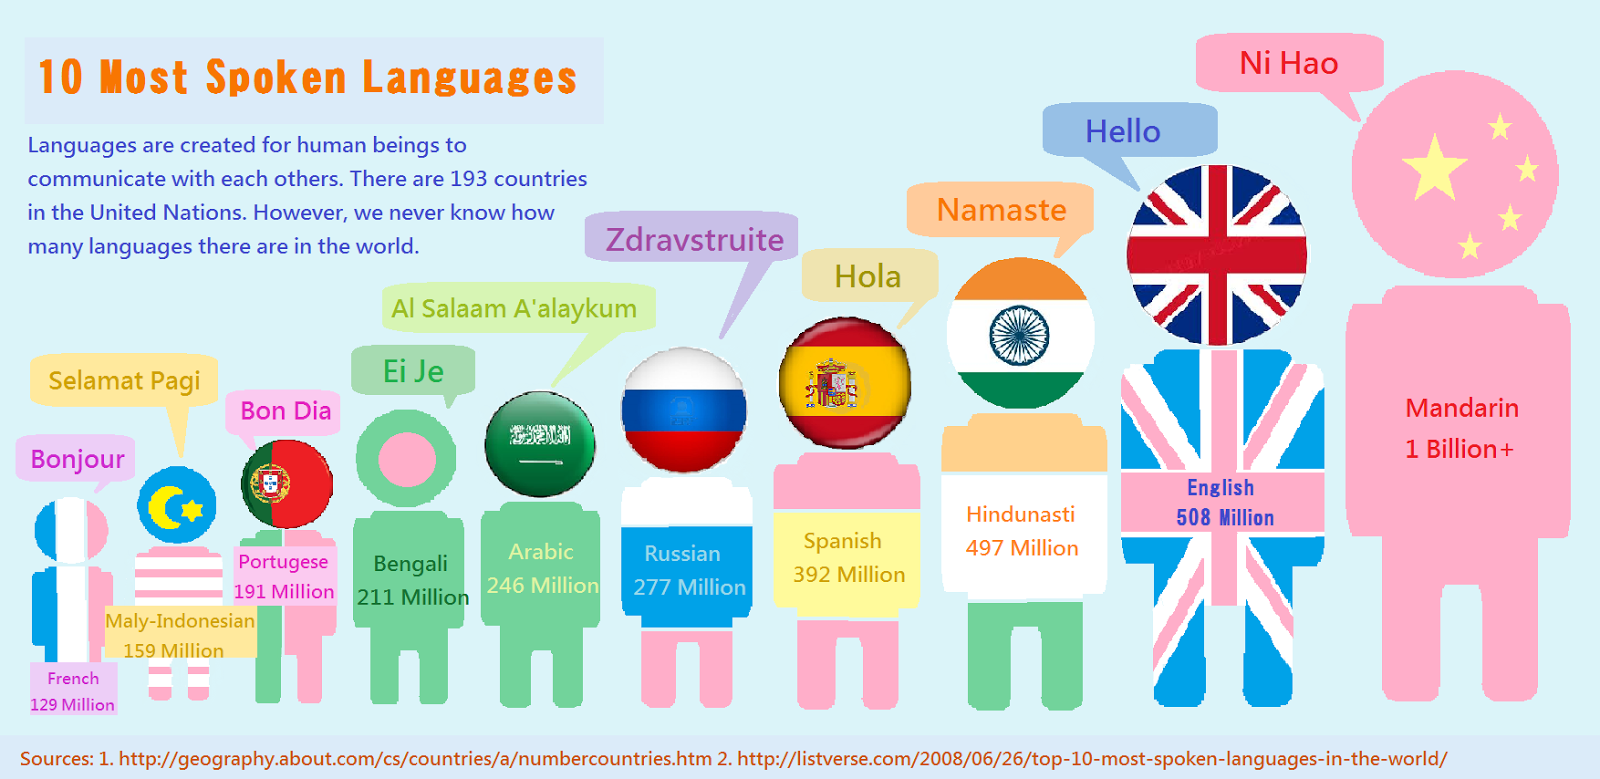 The top 10 most spoken languages.